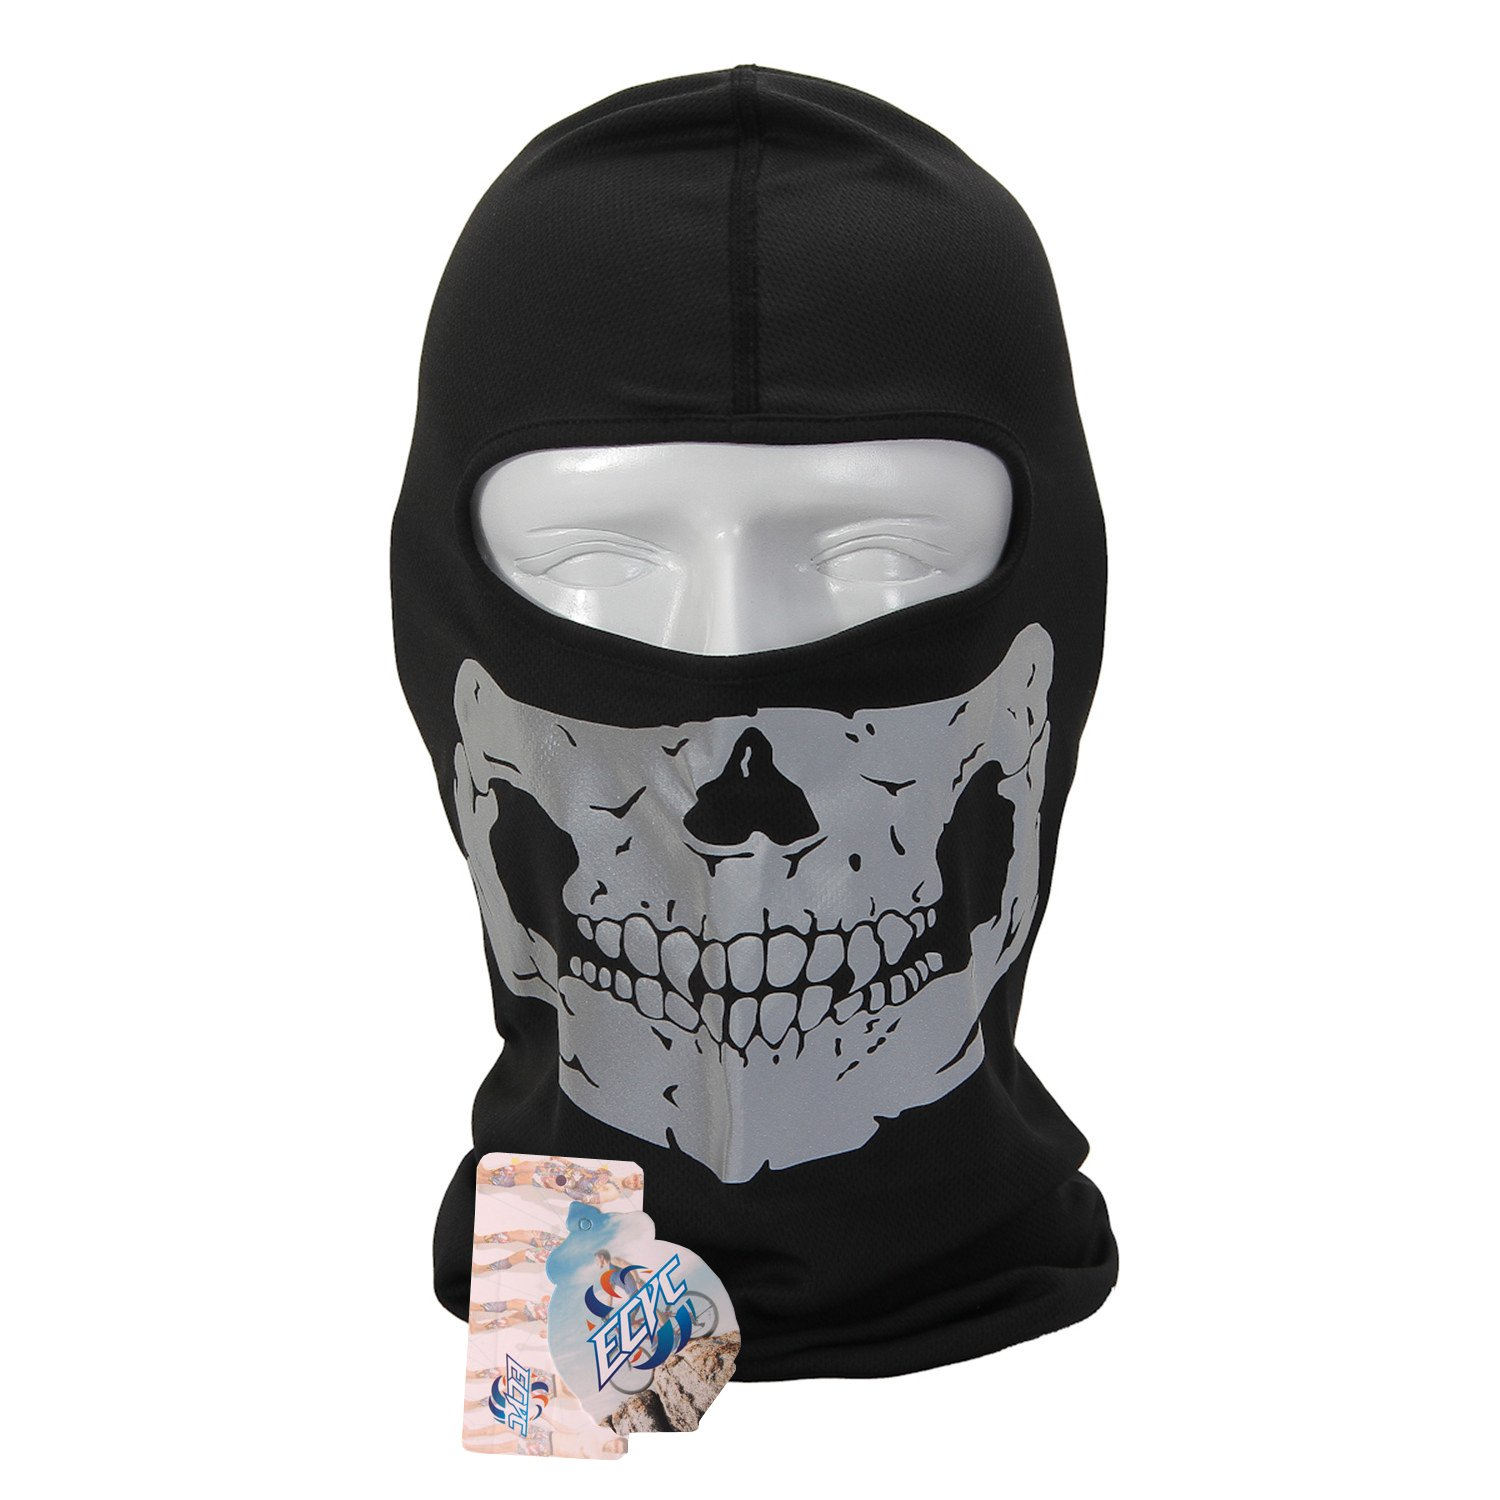 Full Face Motorcycle Bicycle Bike Skull Mask Snowmobile Hood Neck Balaclava Hat Silver